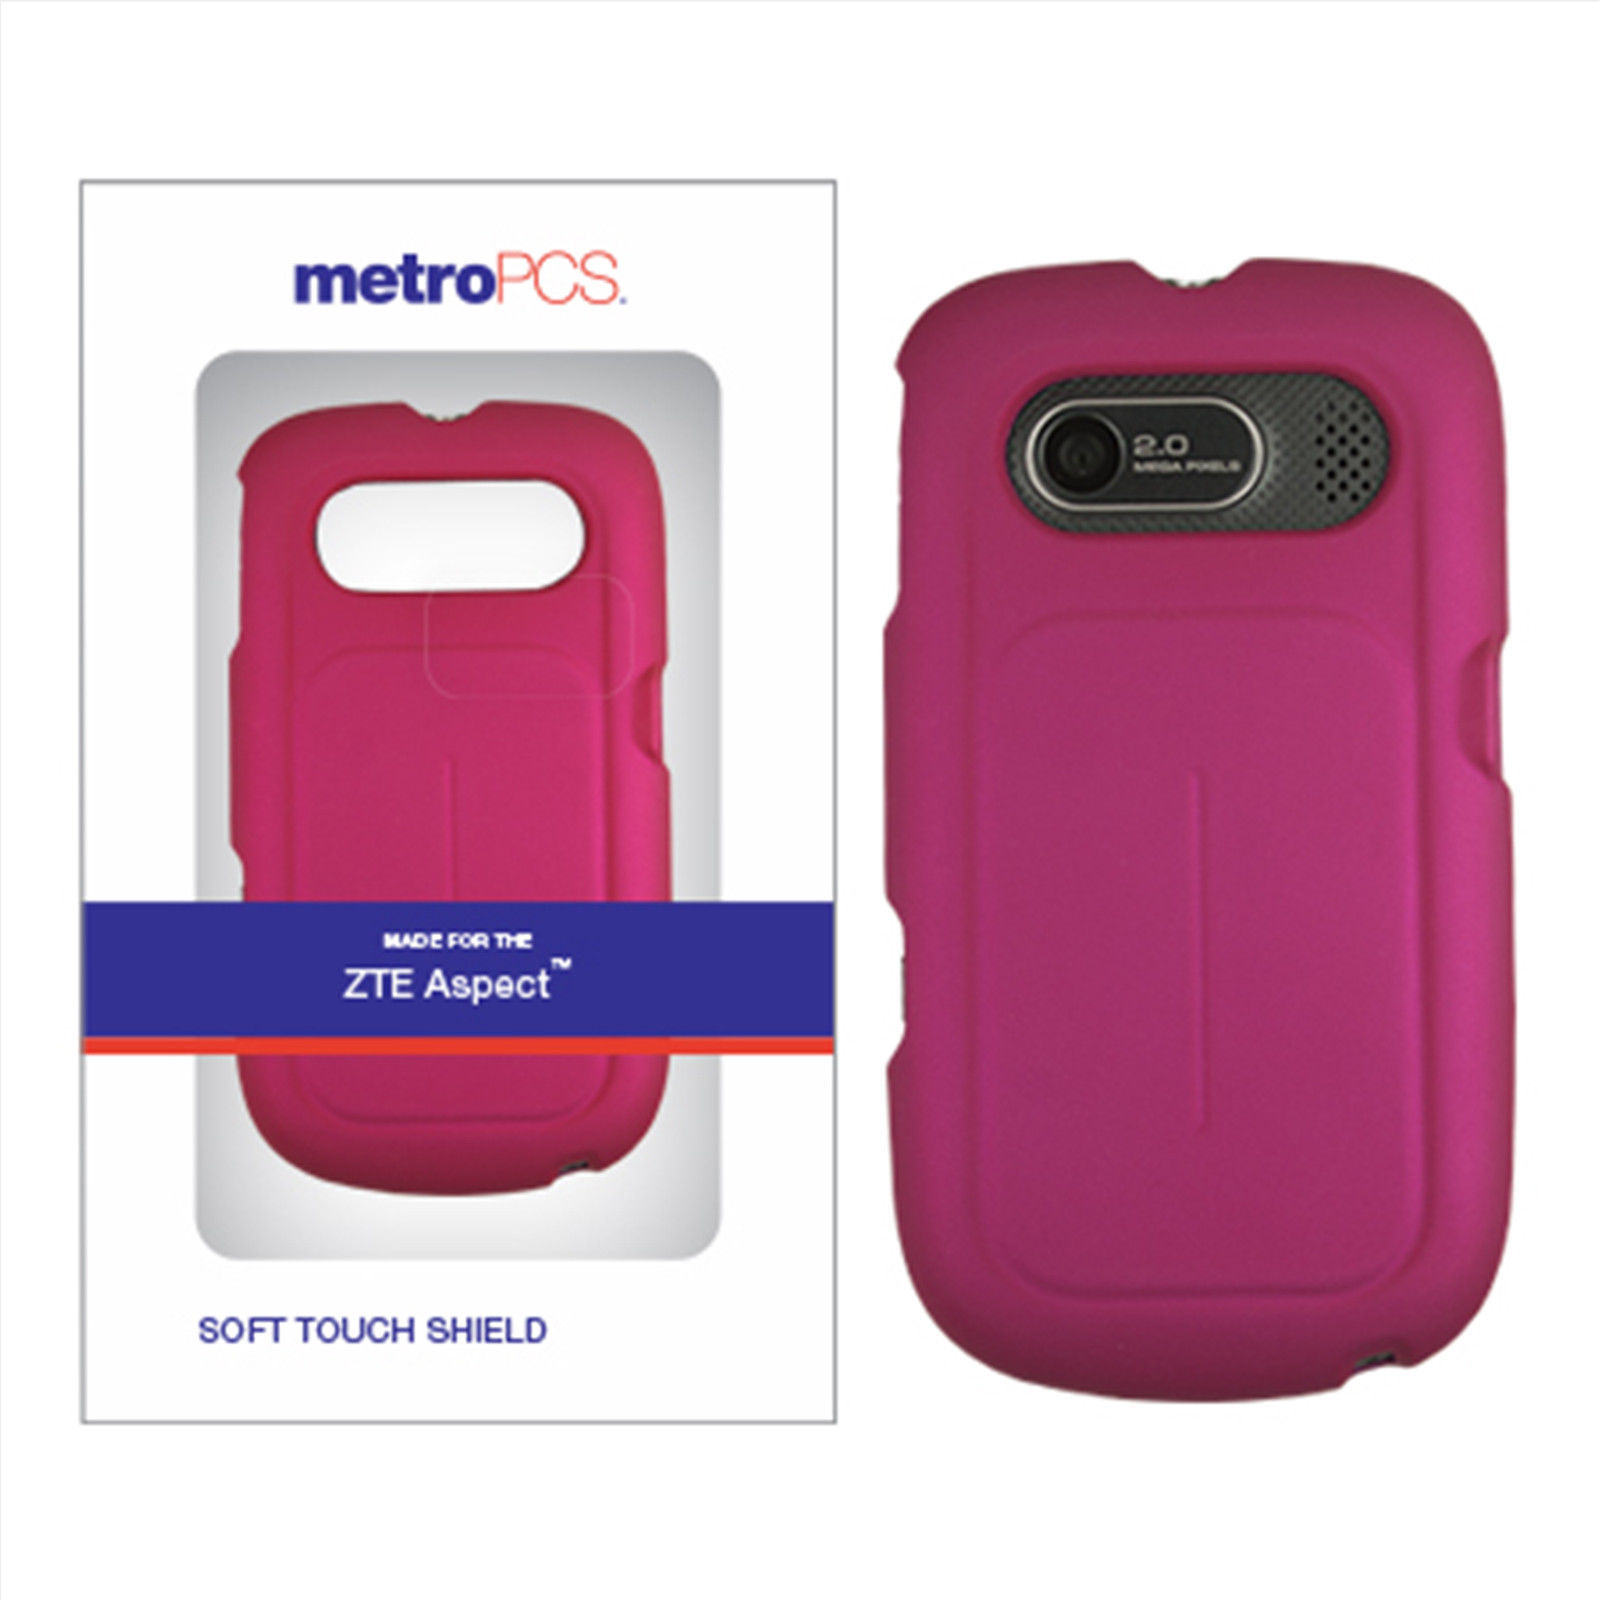 MetroPCS Pink Soft Touch Shield Case for ZTE Aspect Smartphone